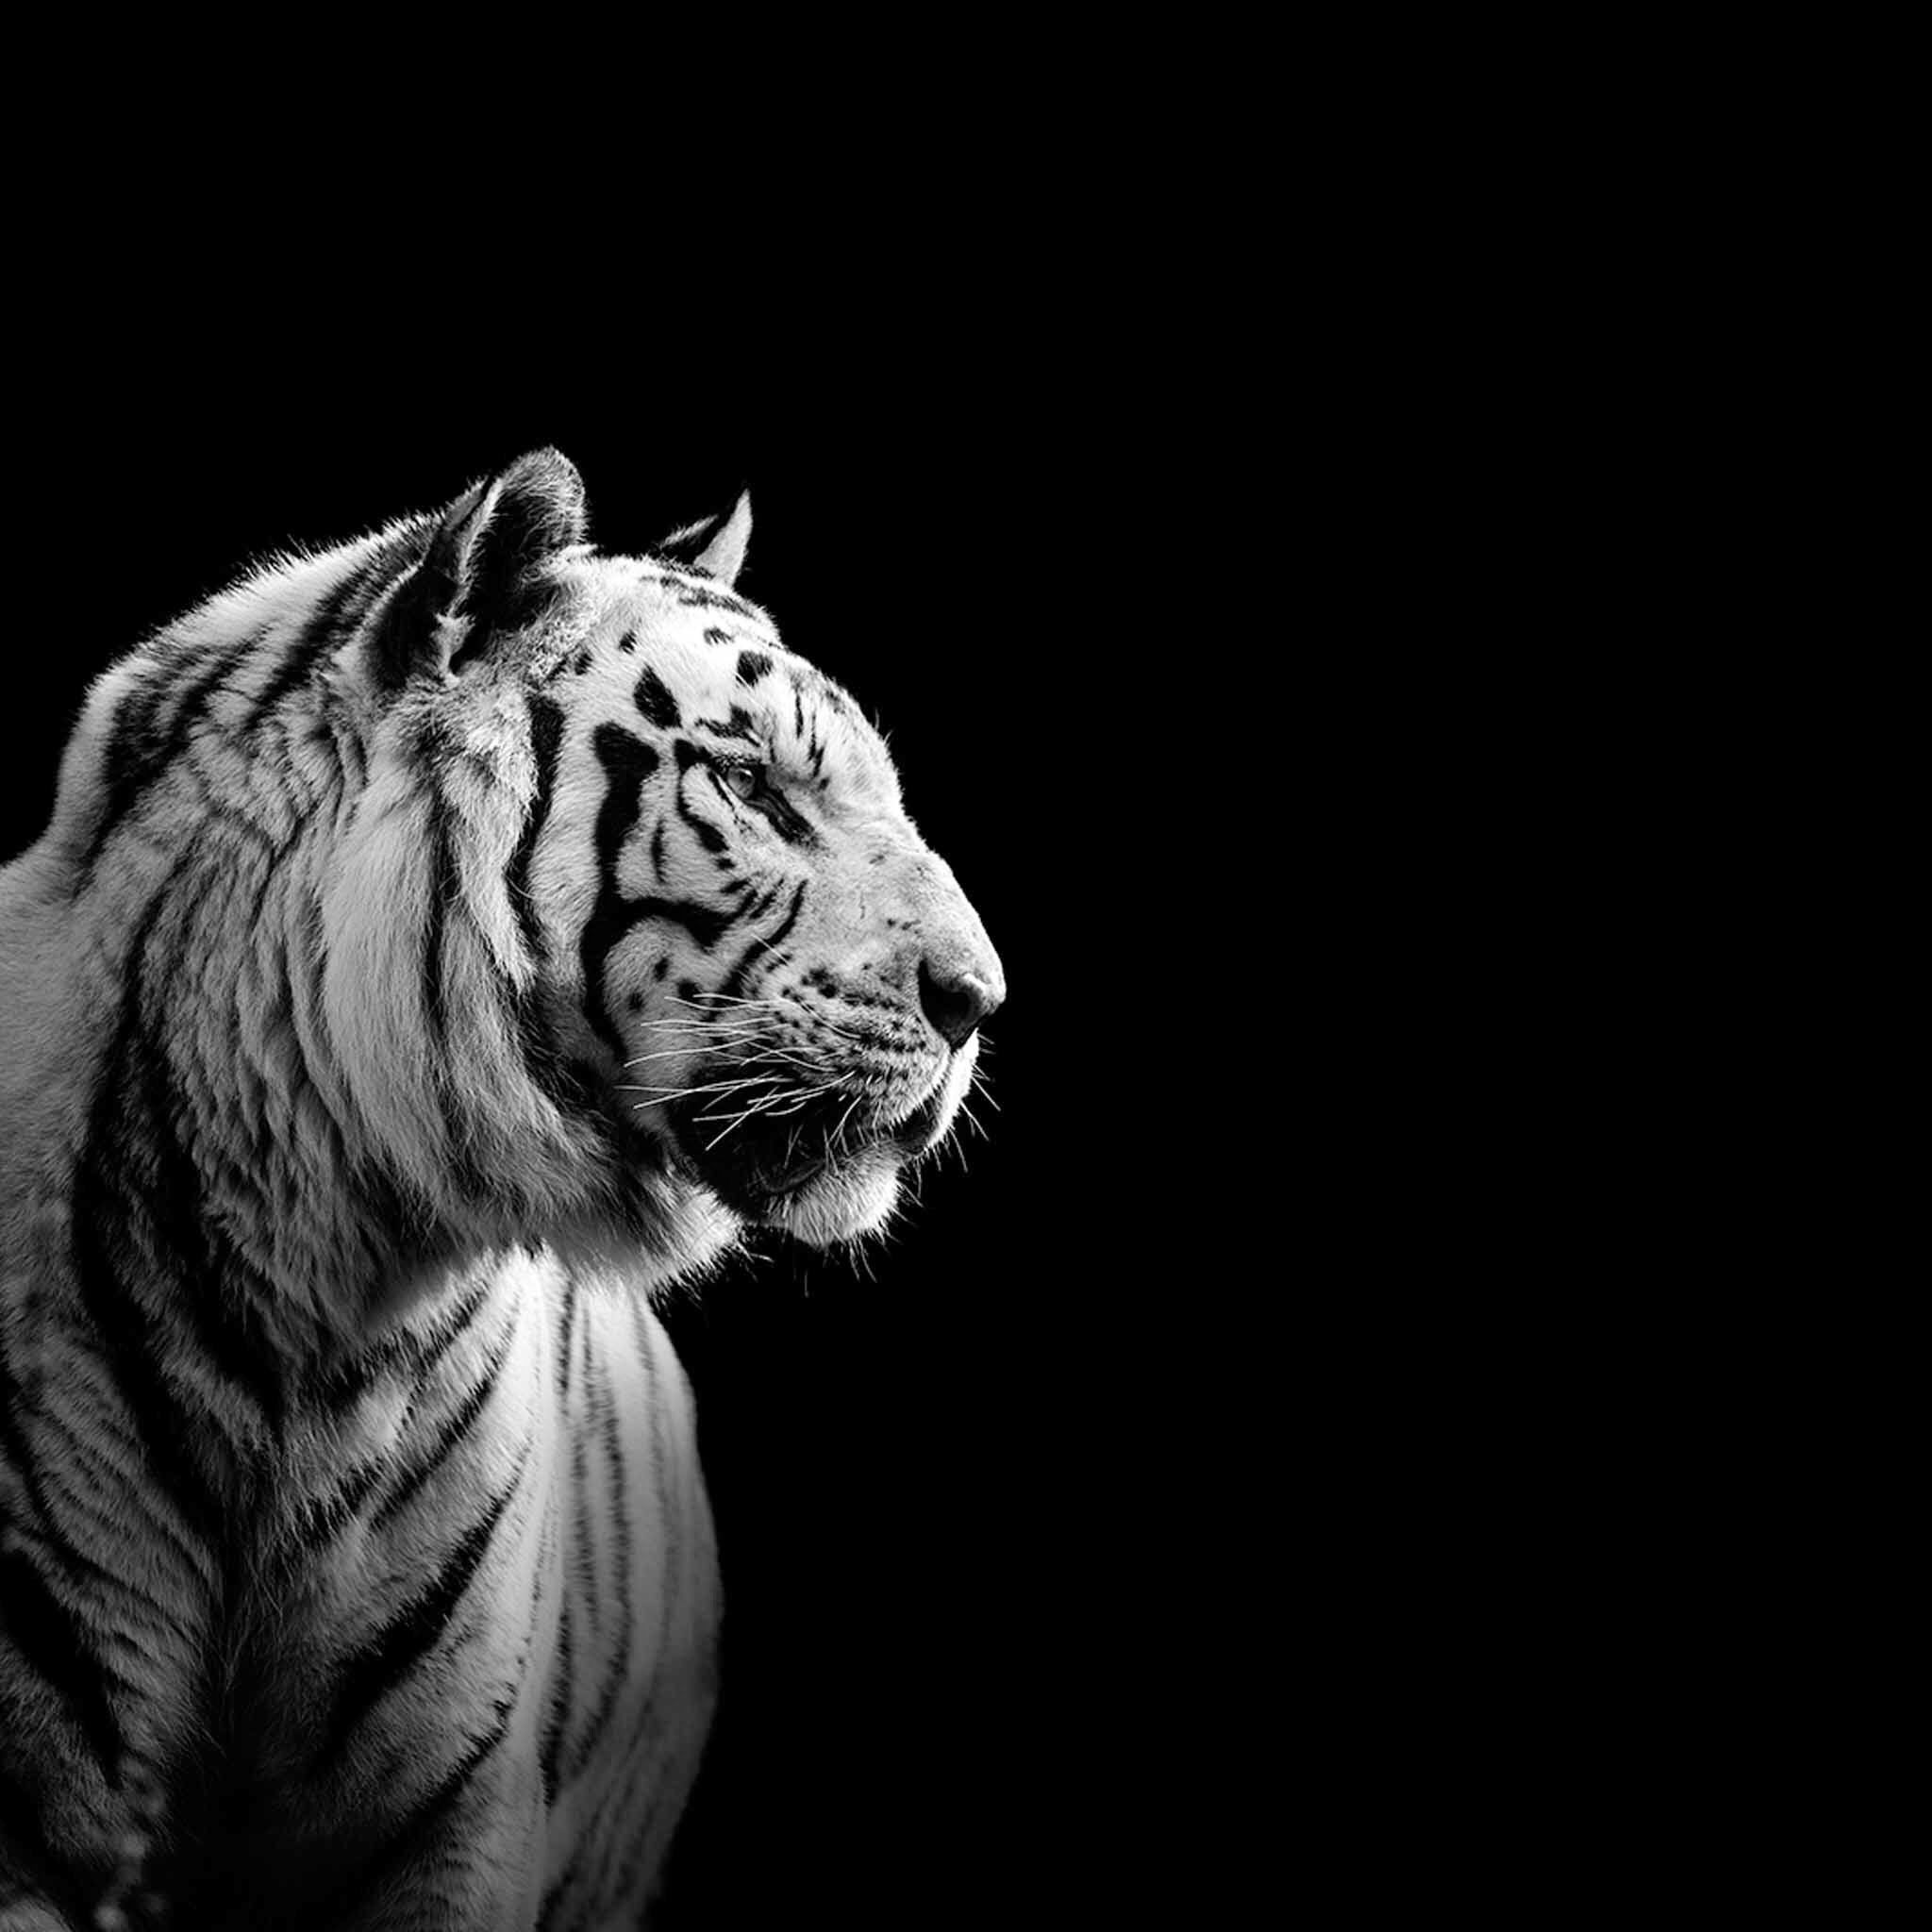 This White Tiger Is Staring In To The Darkness Tiger Images Tiger Wallpaper Tiger Photography